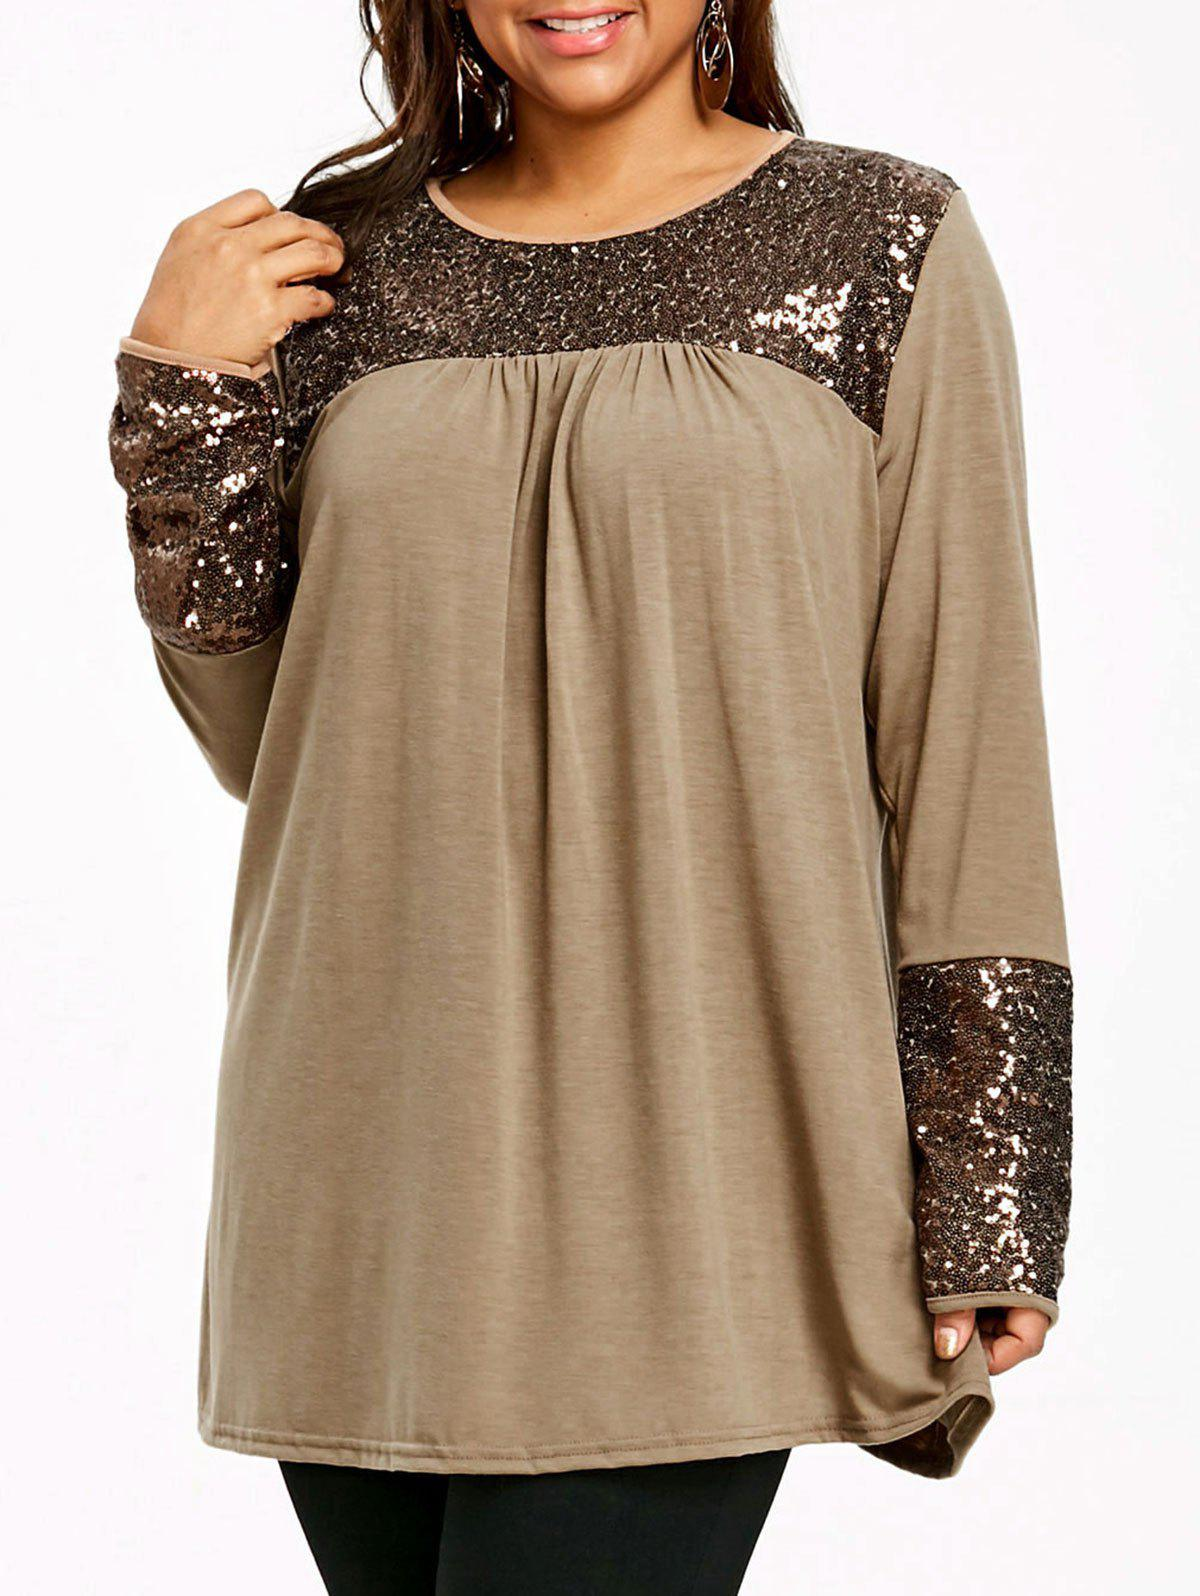 Plus Size Sequin Embellished Tunic Top plus size bowknot embellished tunic top